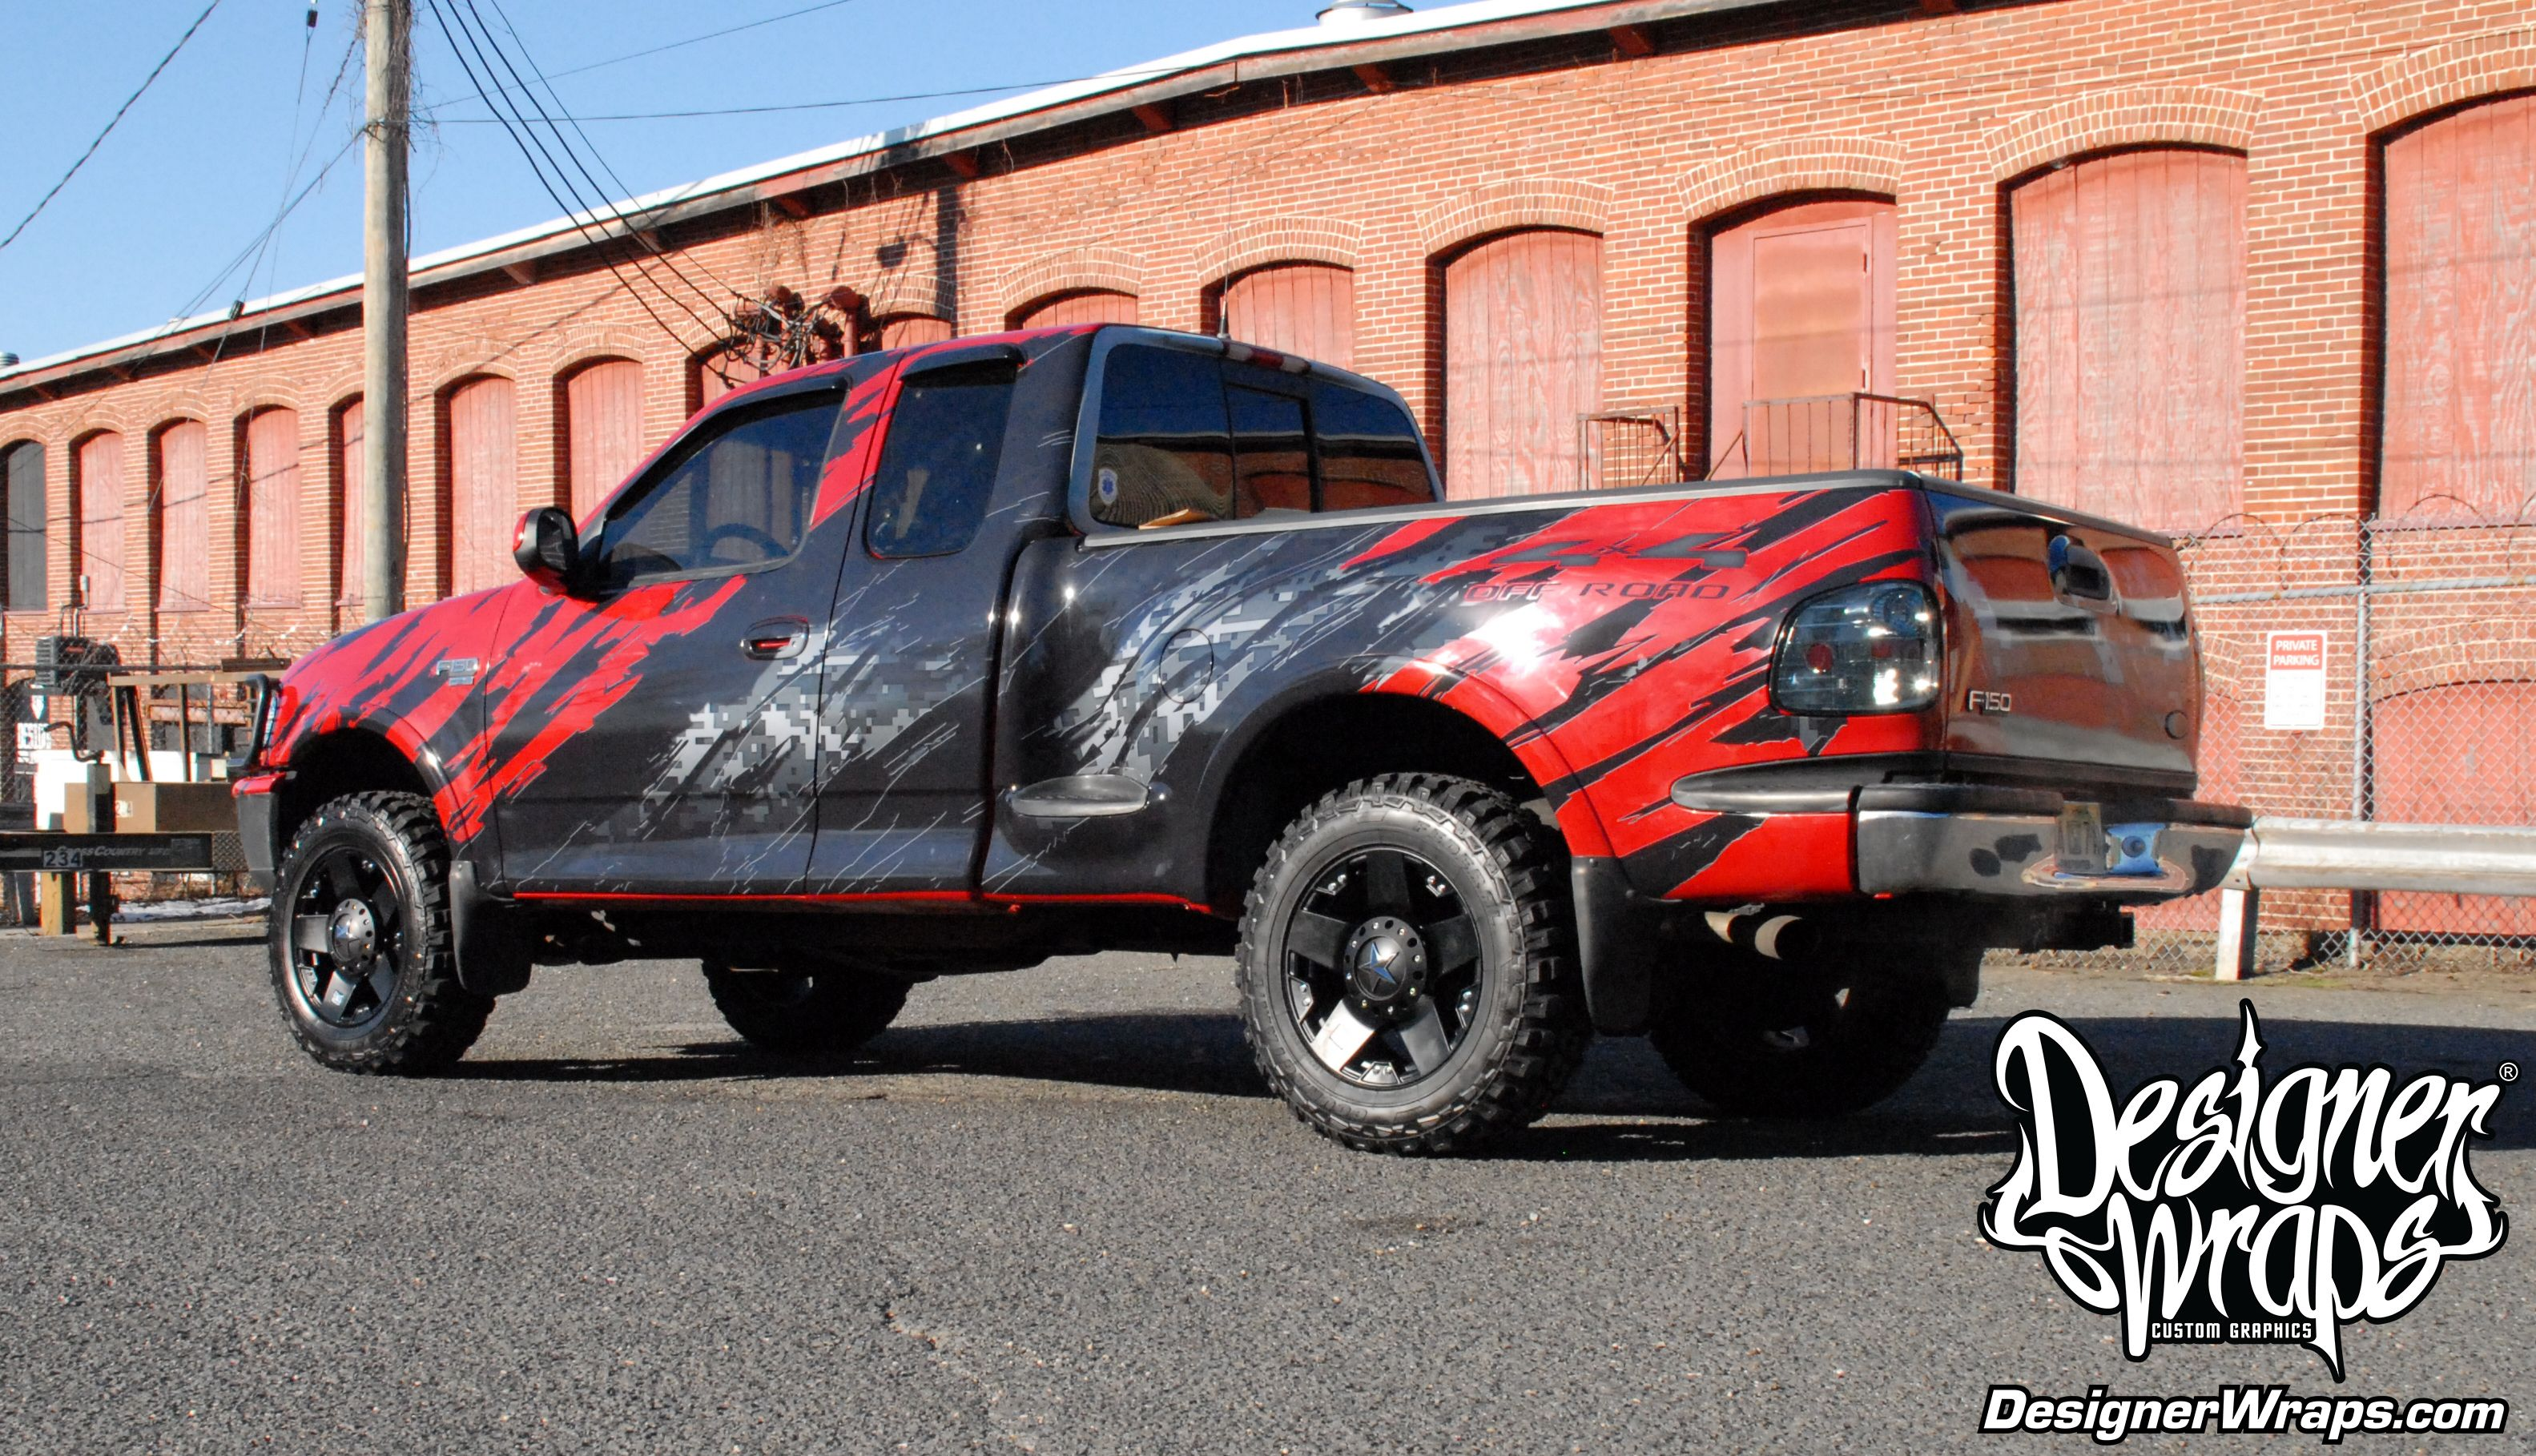 Images about trucks amp cars on pinterest ford trucks and ford trucks - Dsc_0052 Jpg 3166 1818 Vehicle Wrapstruck